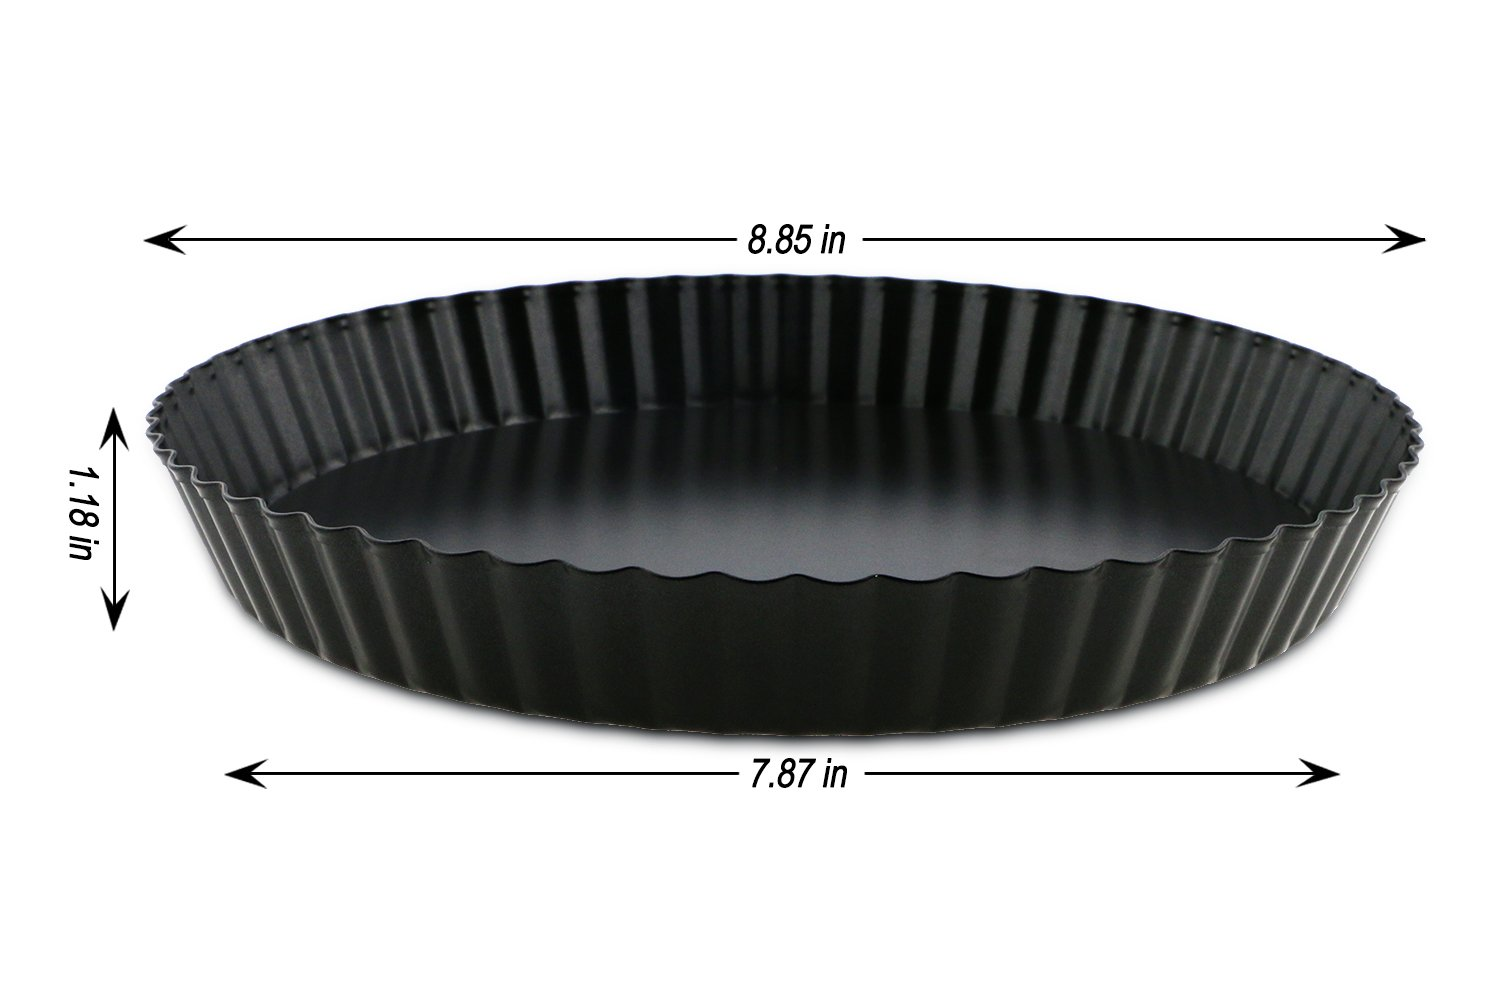 TedGem 2 Pack Non-Stick 8.8 Inches Removable Loose Bottom Quiche Tart Pan by TedGem (Image #2)